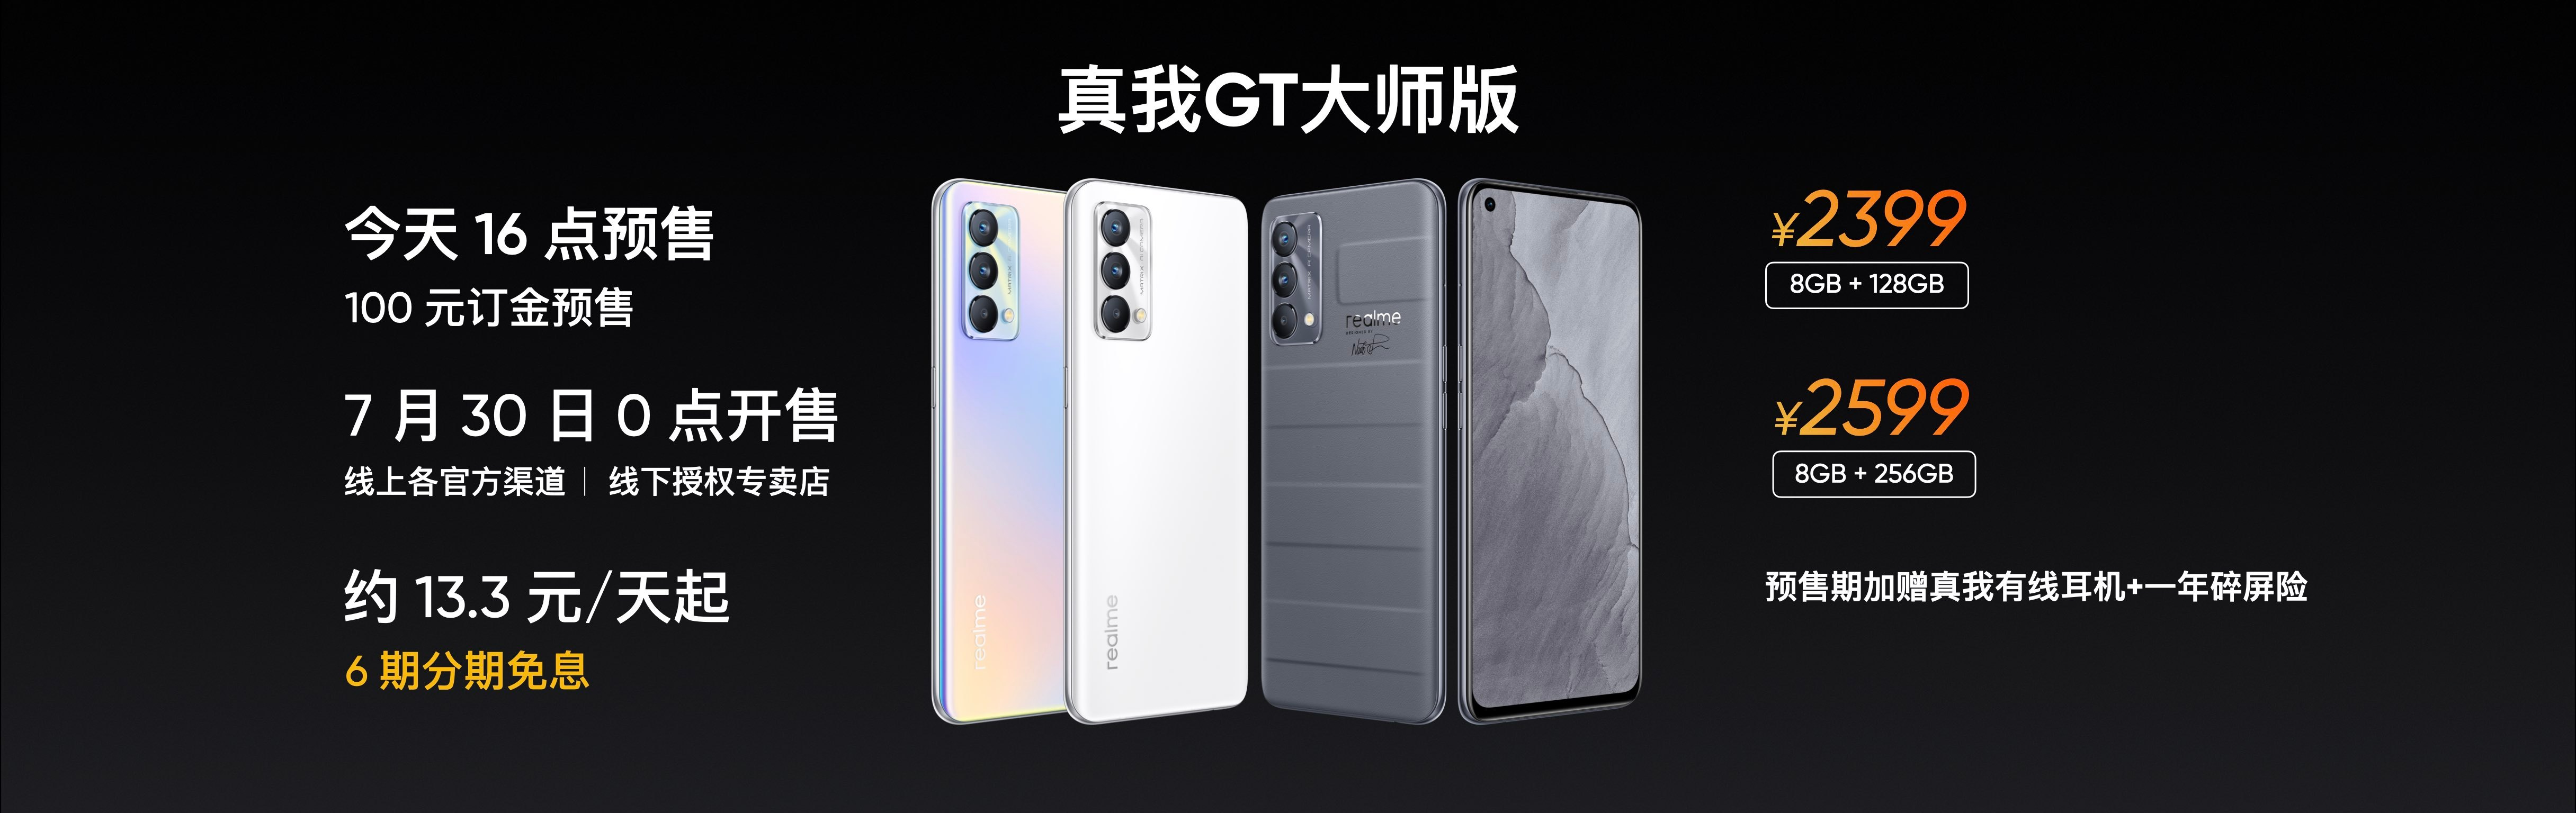 Realme Introduces 2 GT Master Editions 1